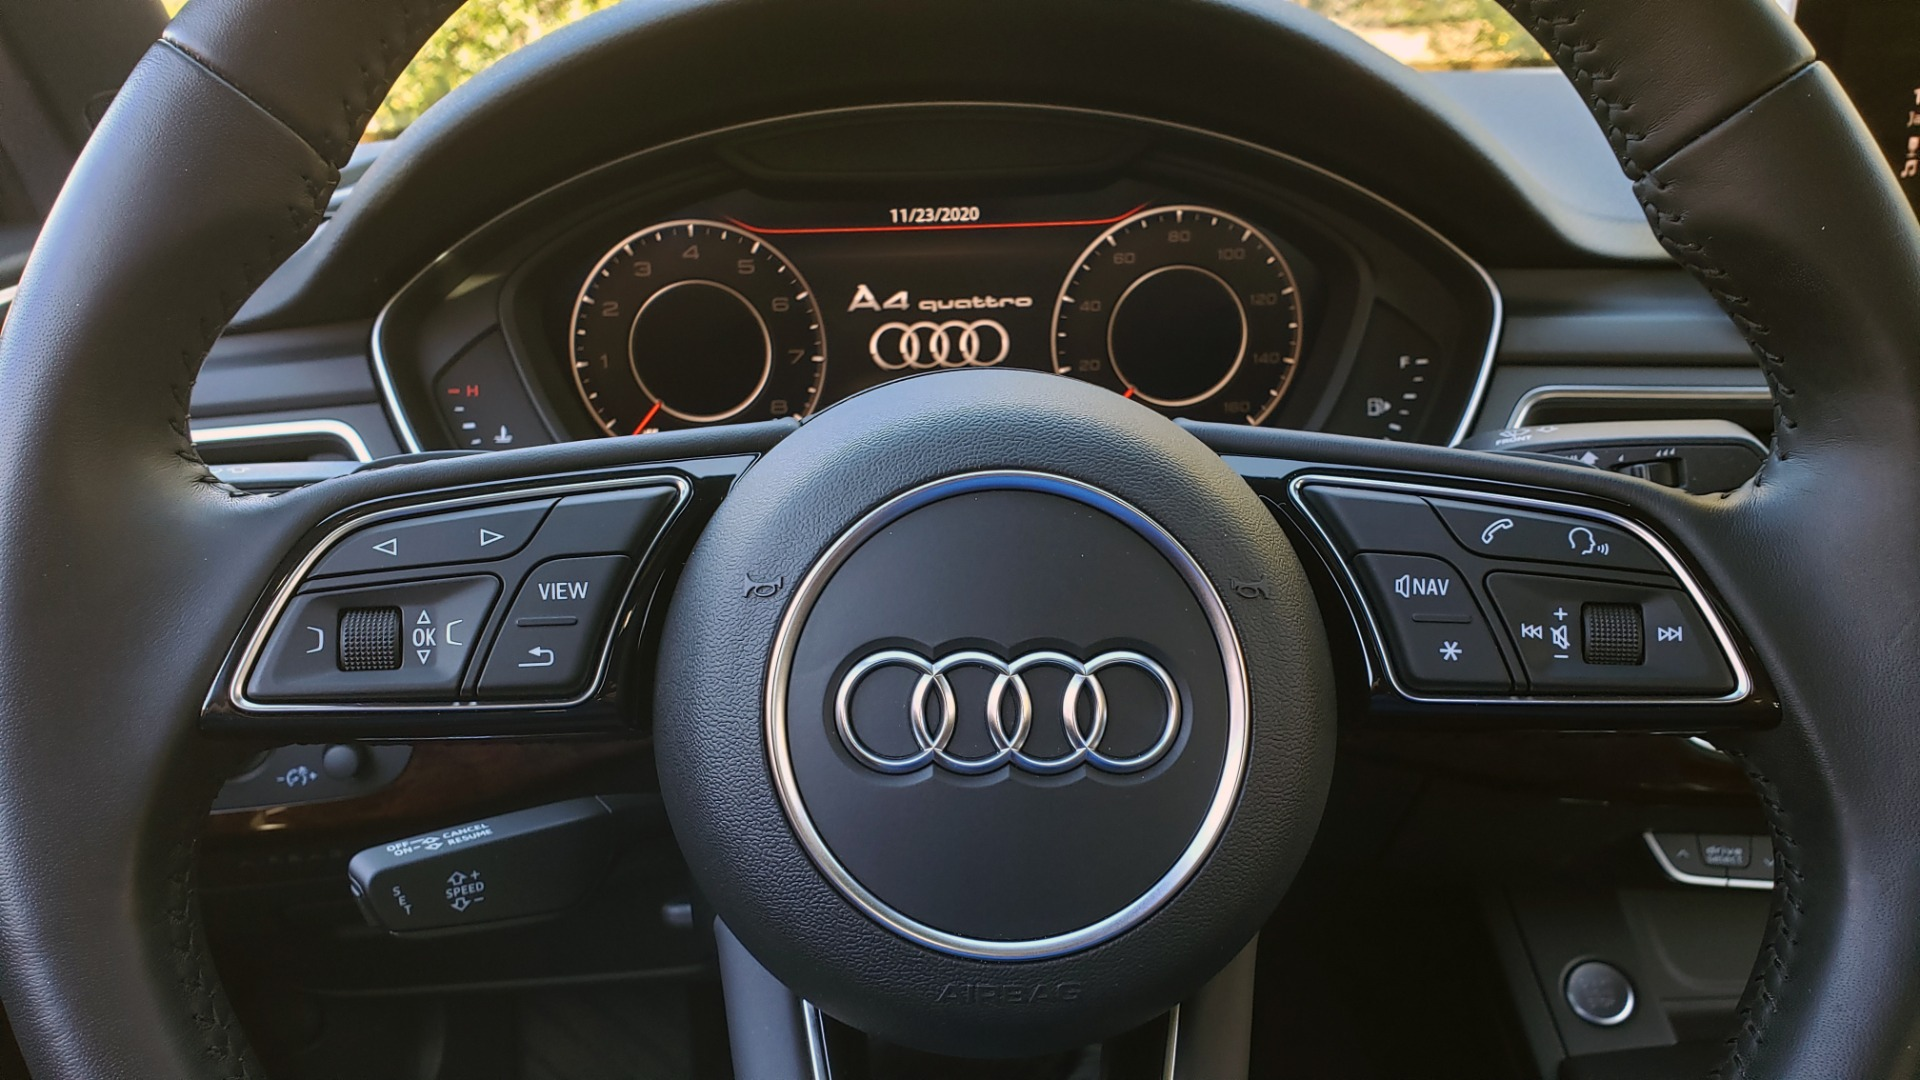 Used 2017 Audi A4 PREMIUM PLUS / TECH PKG / B&O SND / S-LINE / NAV / REARVIEW for sale $24,995 at Formula Imports in Charlotte NC 28227 40